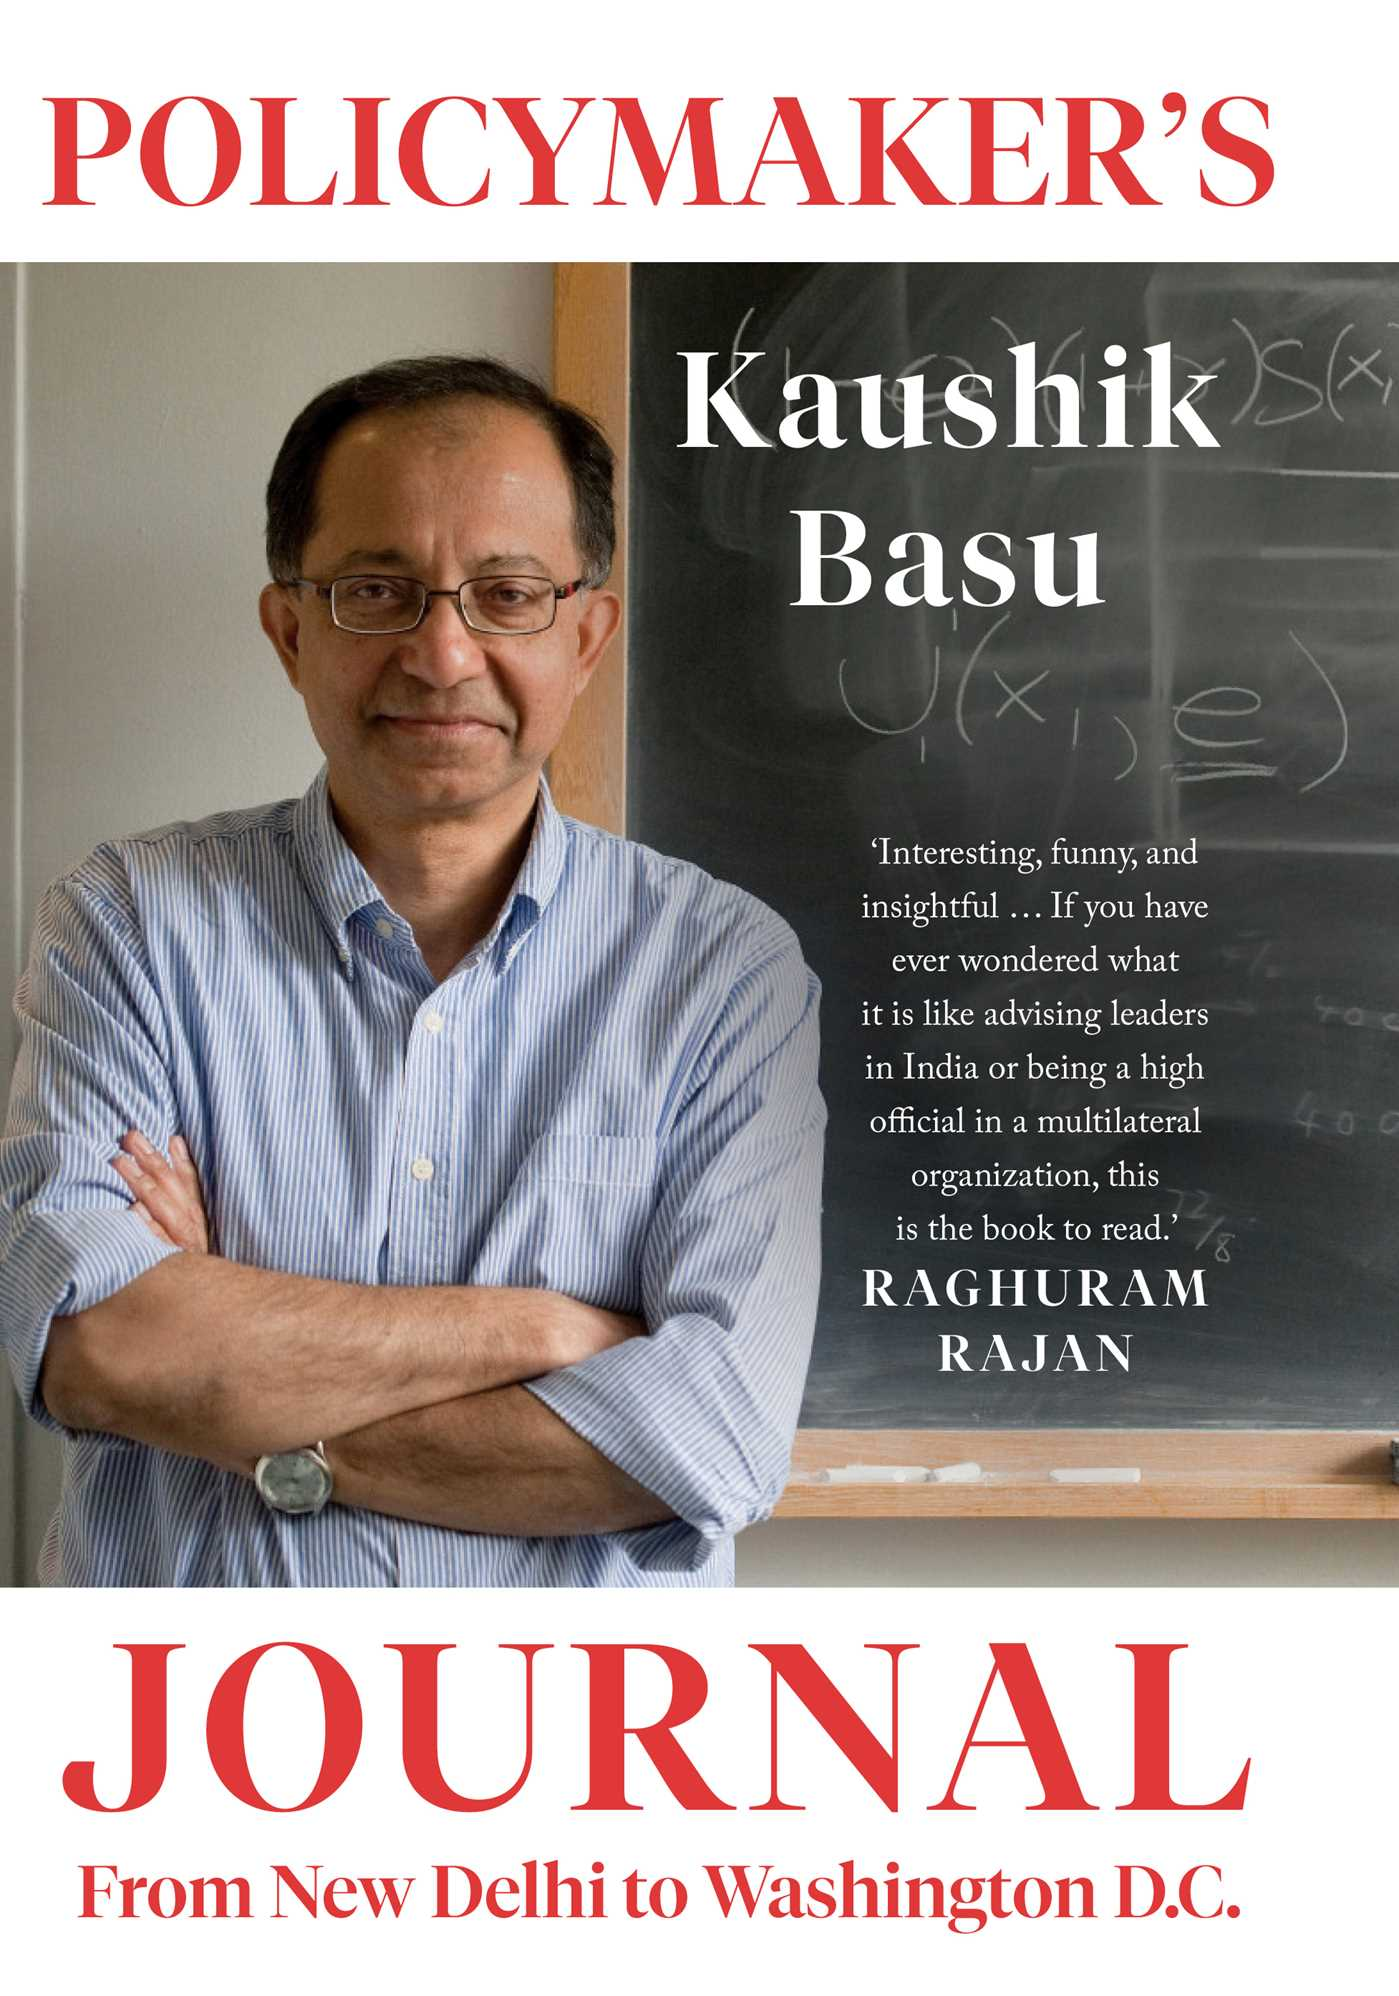 """New Book of Kaushik Basu """"Policymaker's Journal: From New Delhi to Washington, DC"""" will soon to be Released"""